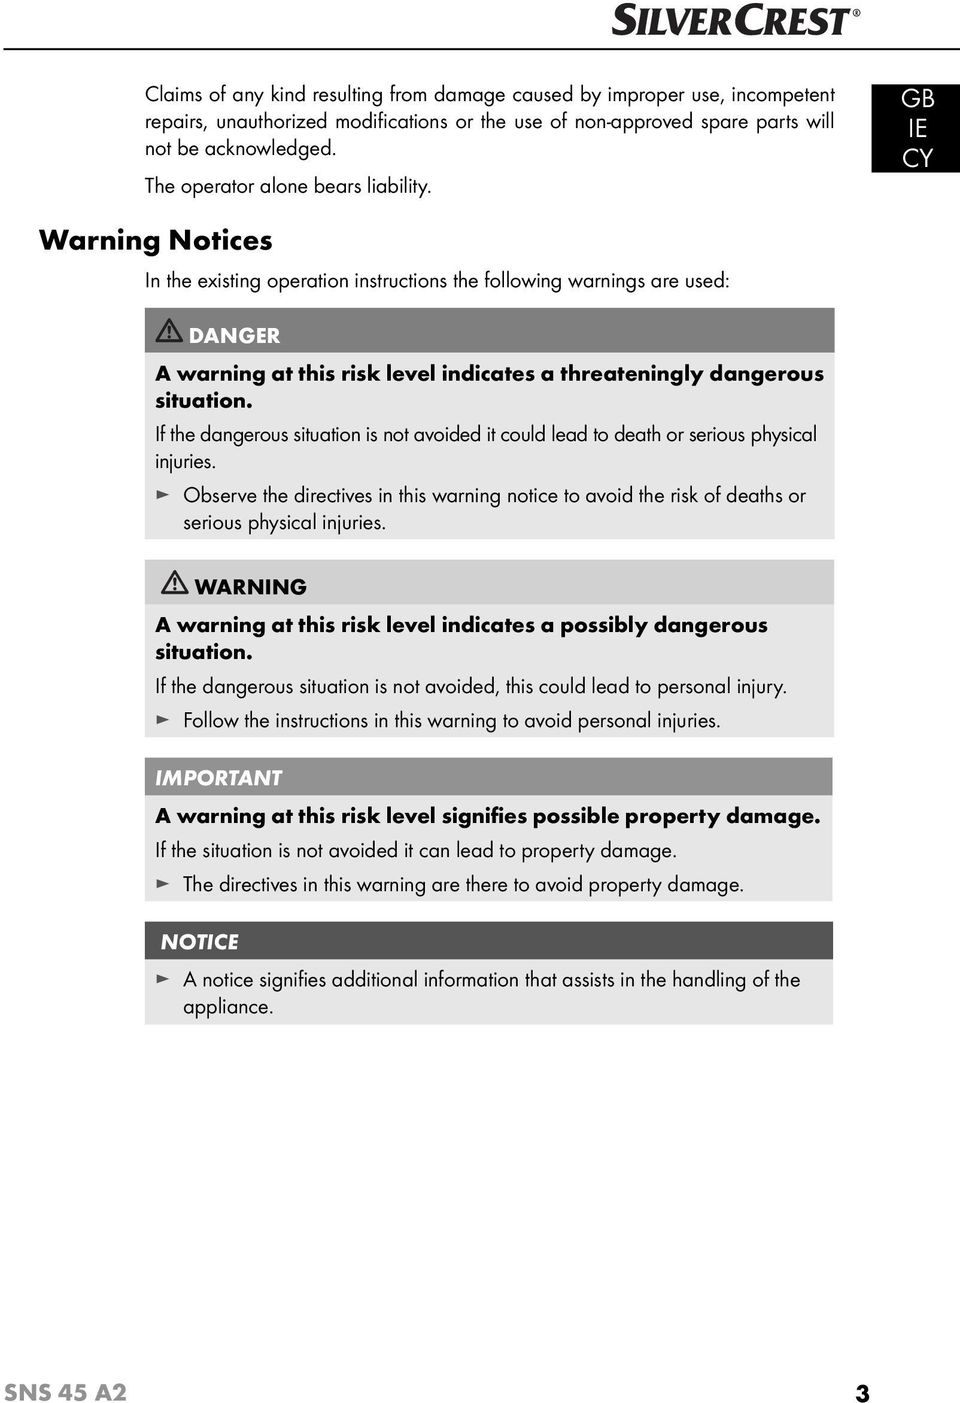 GB IE Warning Notices In the existing operation instructions the following warnings are used: DANGER A warning at this risk level indicates a threateningly dangerous situation.